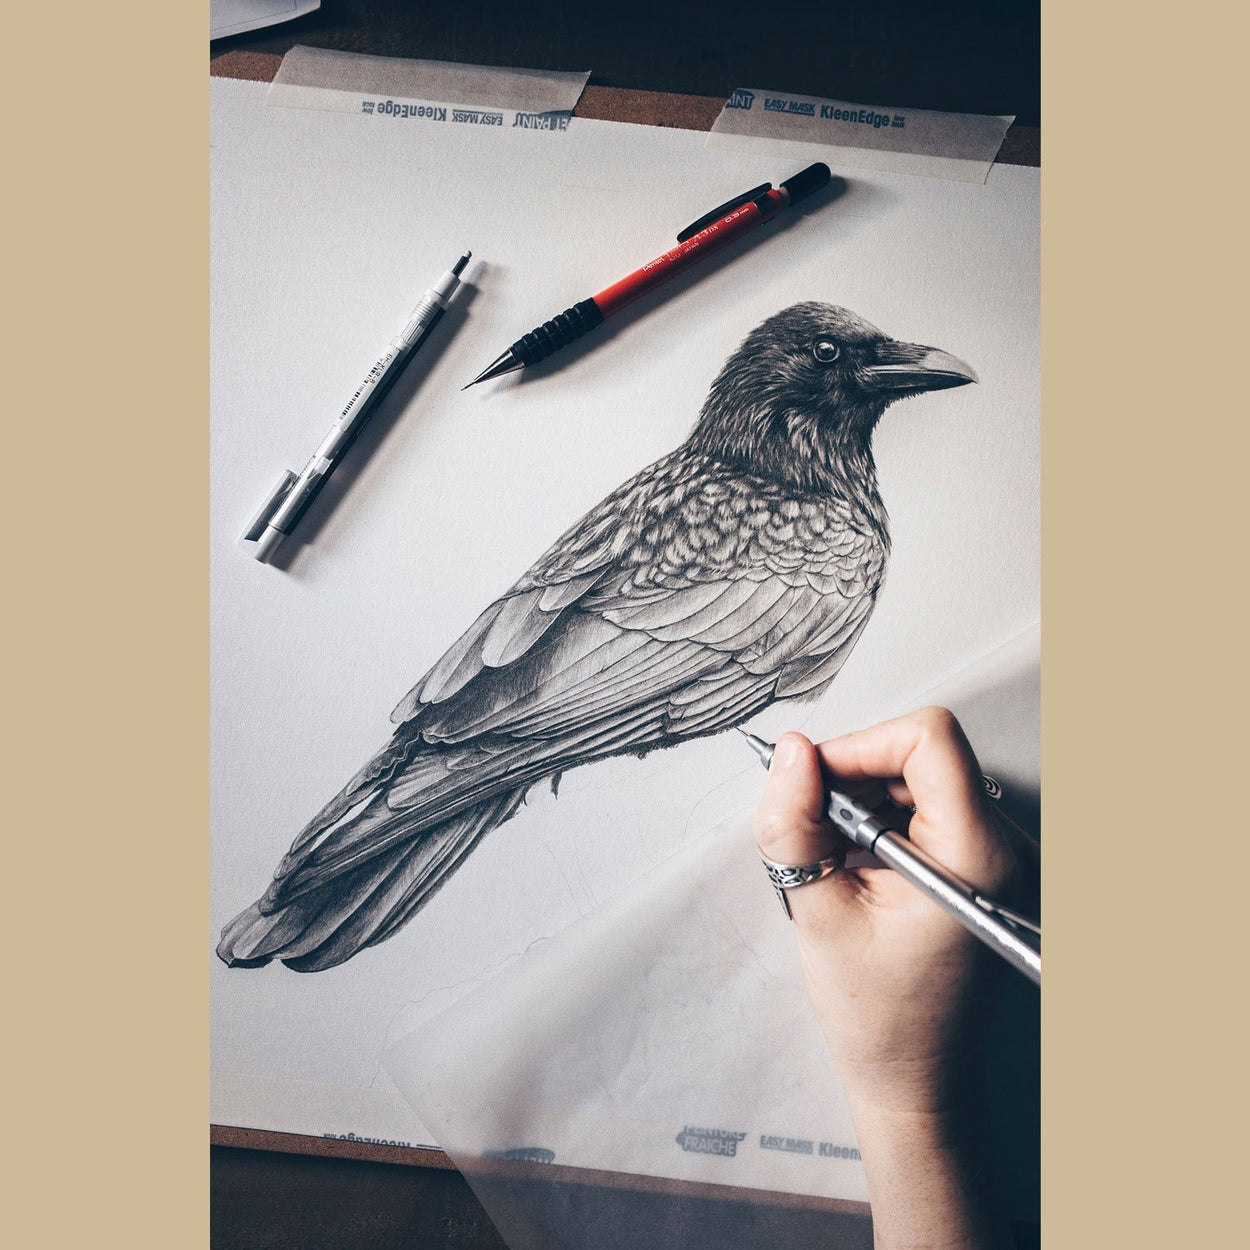 Crow Drawing In Progress - The Thriving Wild